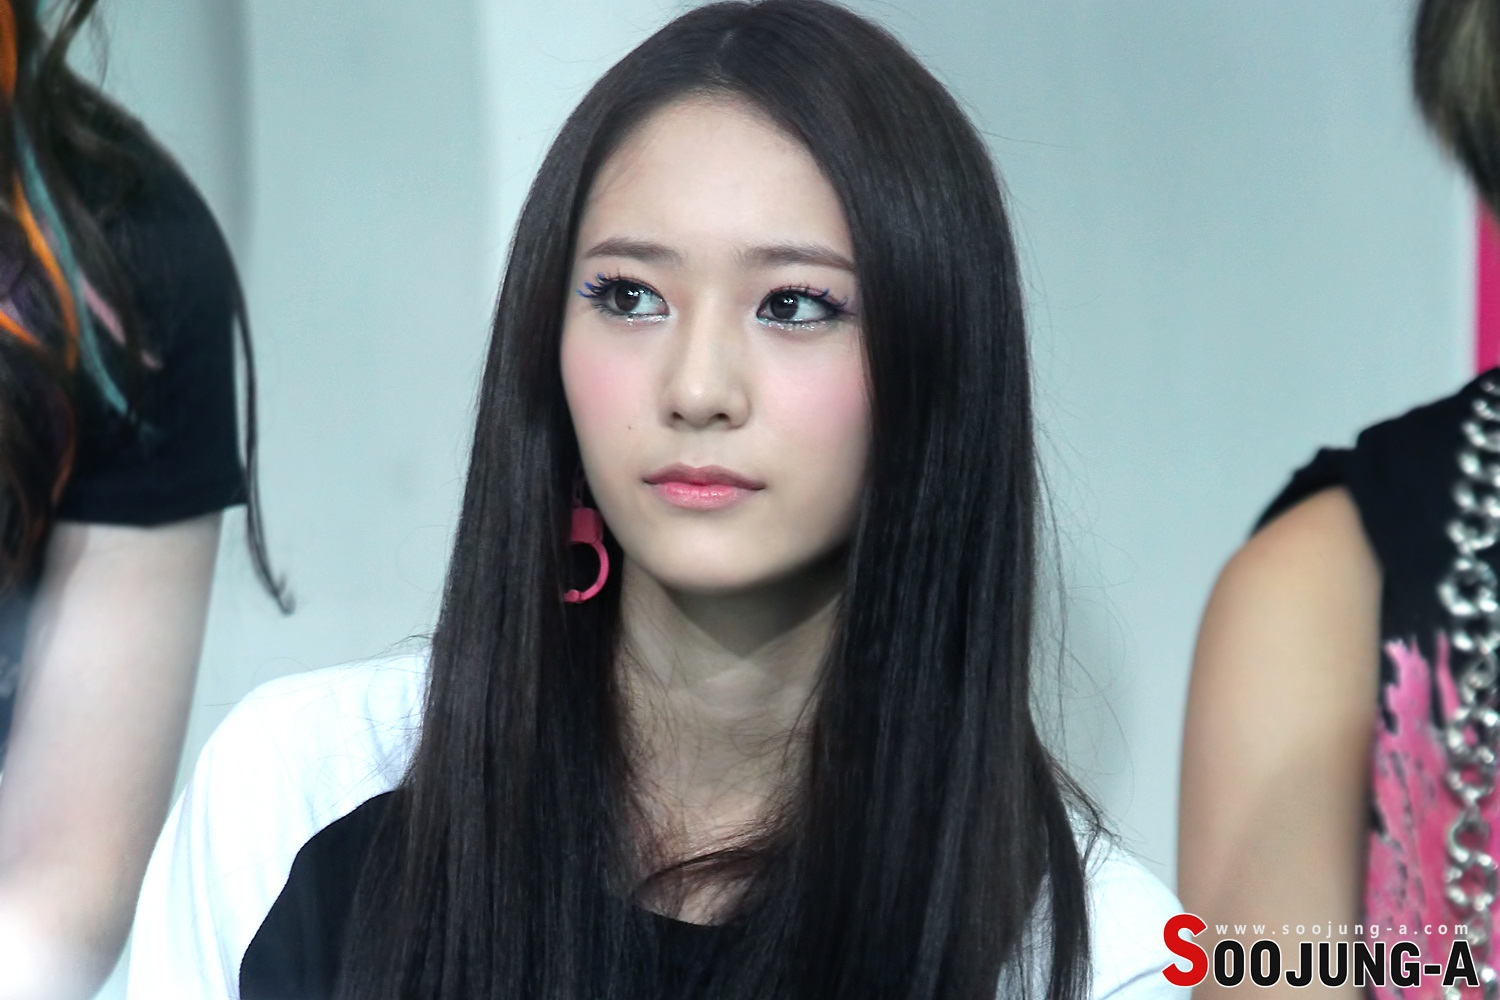 """[EVENT PHOTOS MONTHLY] Krystal (Jung Soo Jung)'s """"1st ... F(x) Krystal And Yoona"""